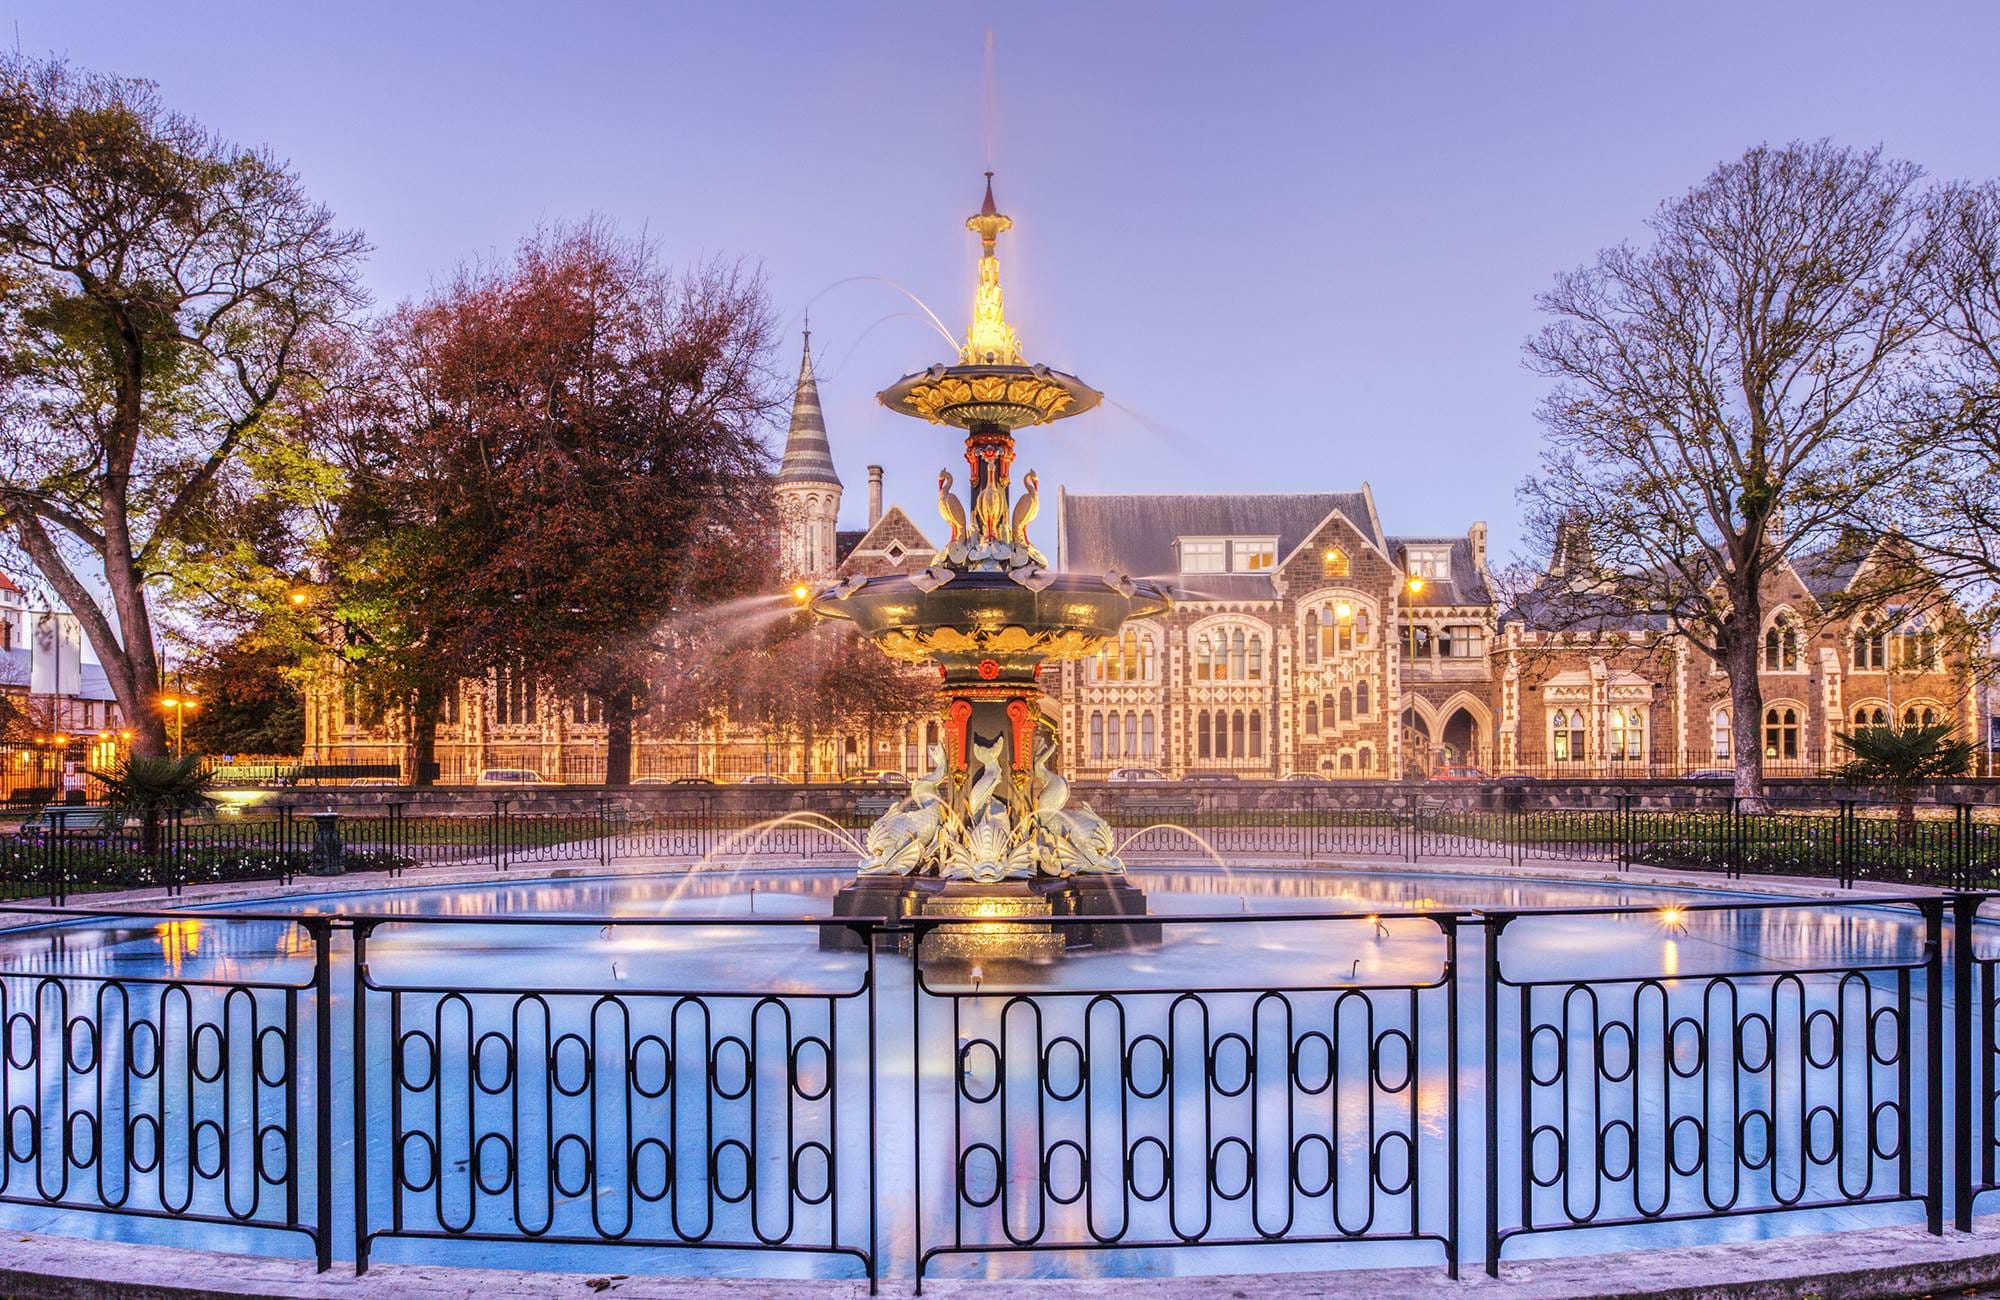 fountain in christchurch